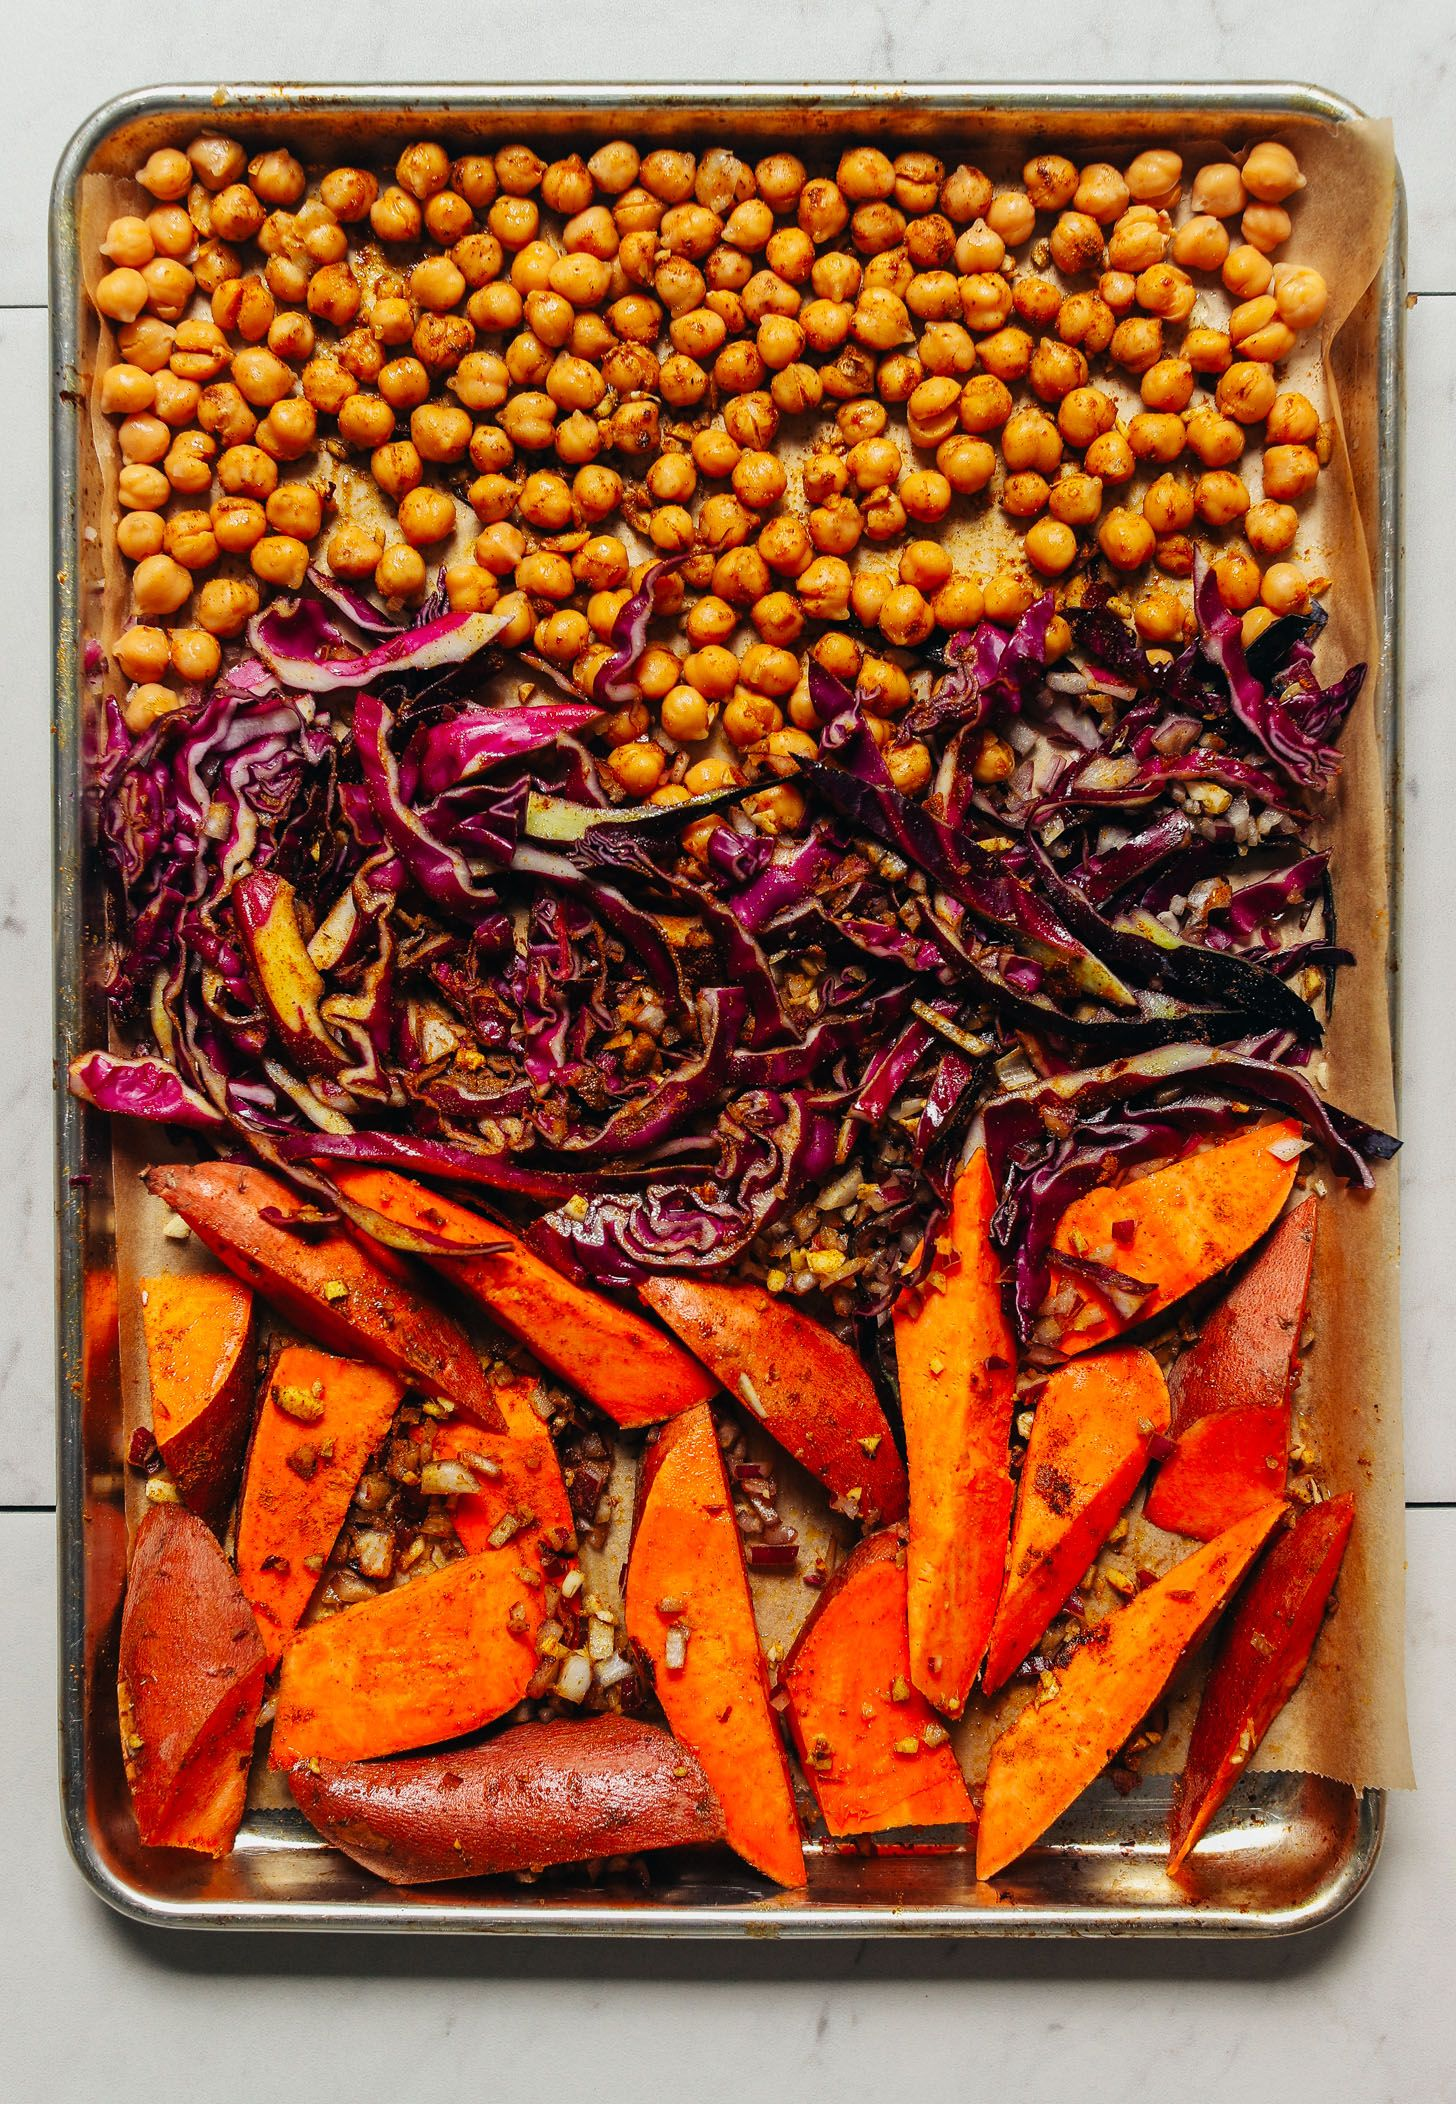 Sheet Pan Meal Curried Sweet Potato Chickpeas Minimalist Baker Recipes Recipe Sheet Pan Recipes Recipes Easy Cooking Recipes